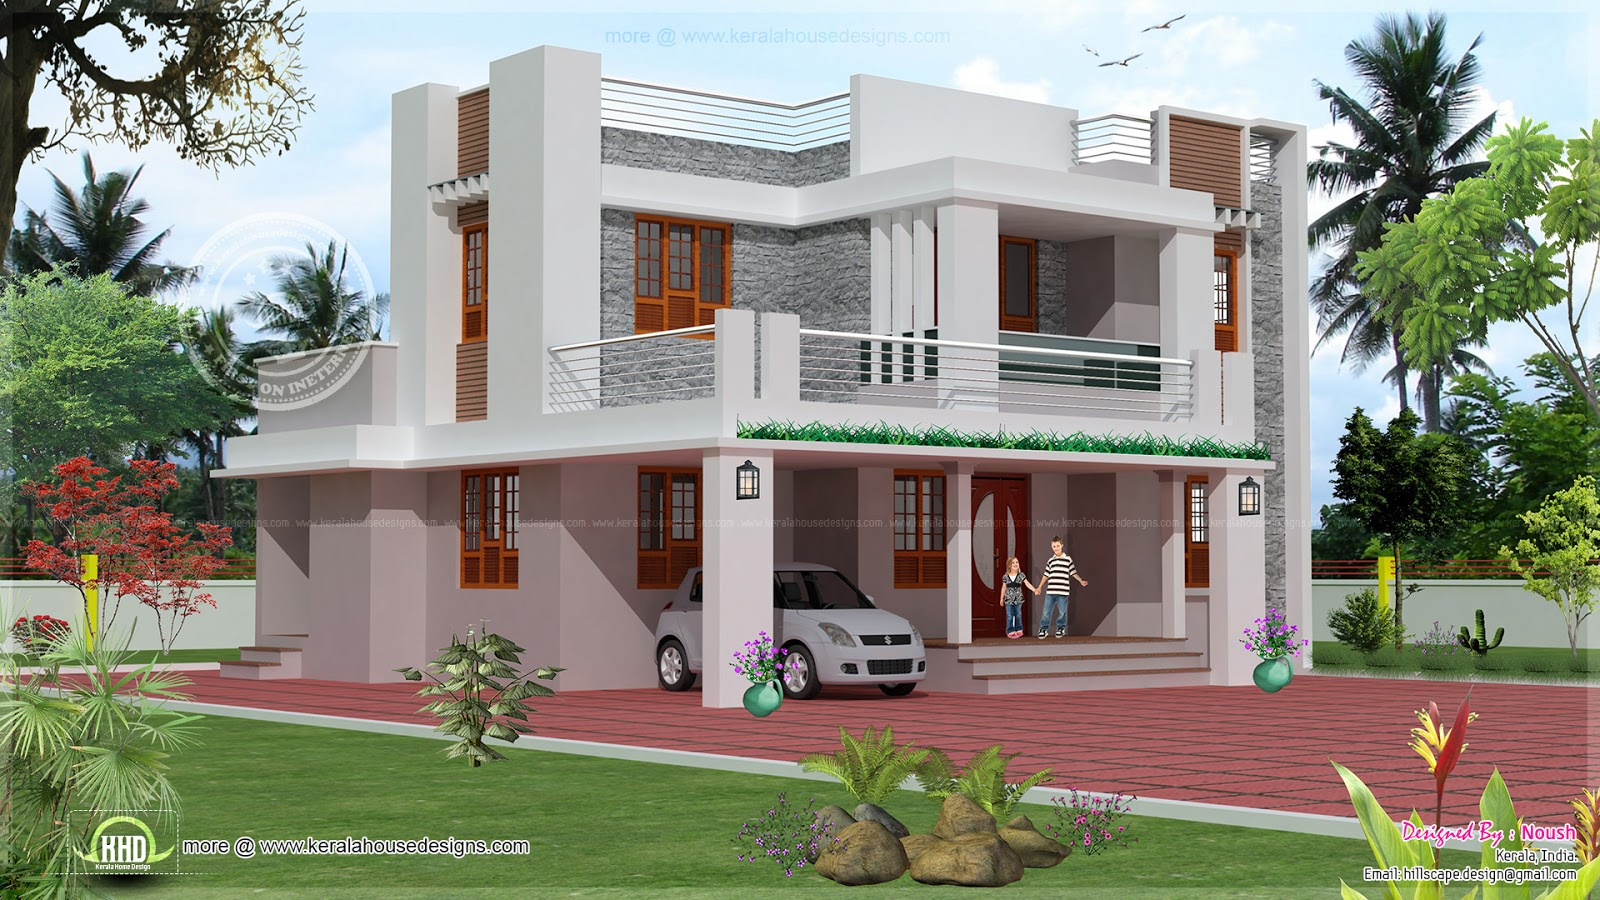 4 bedroom 2 story house exterior design house design plans for External design house